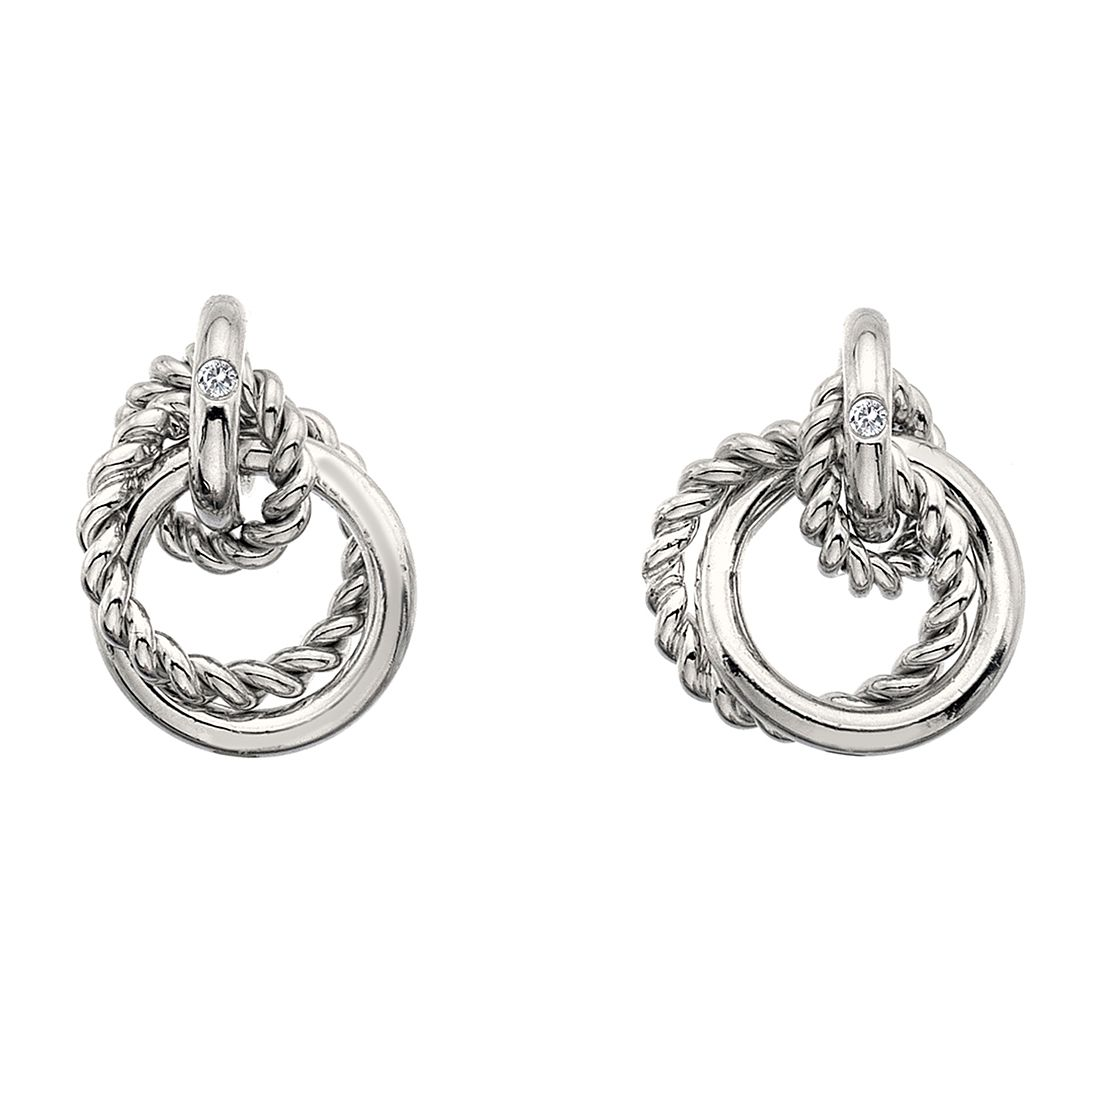 Hot Diamonds Sterling Silver Interlocking Hoop Earrings - Product number 4587065